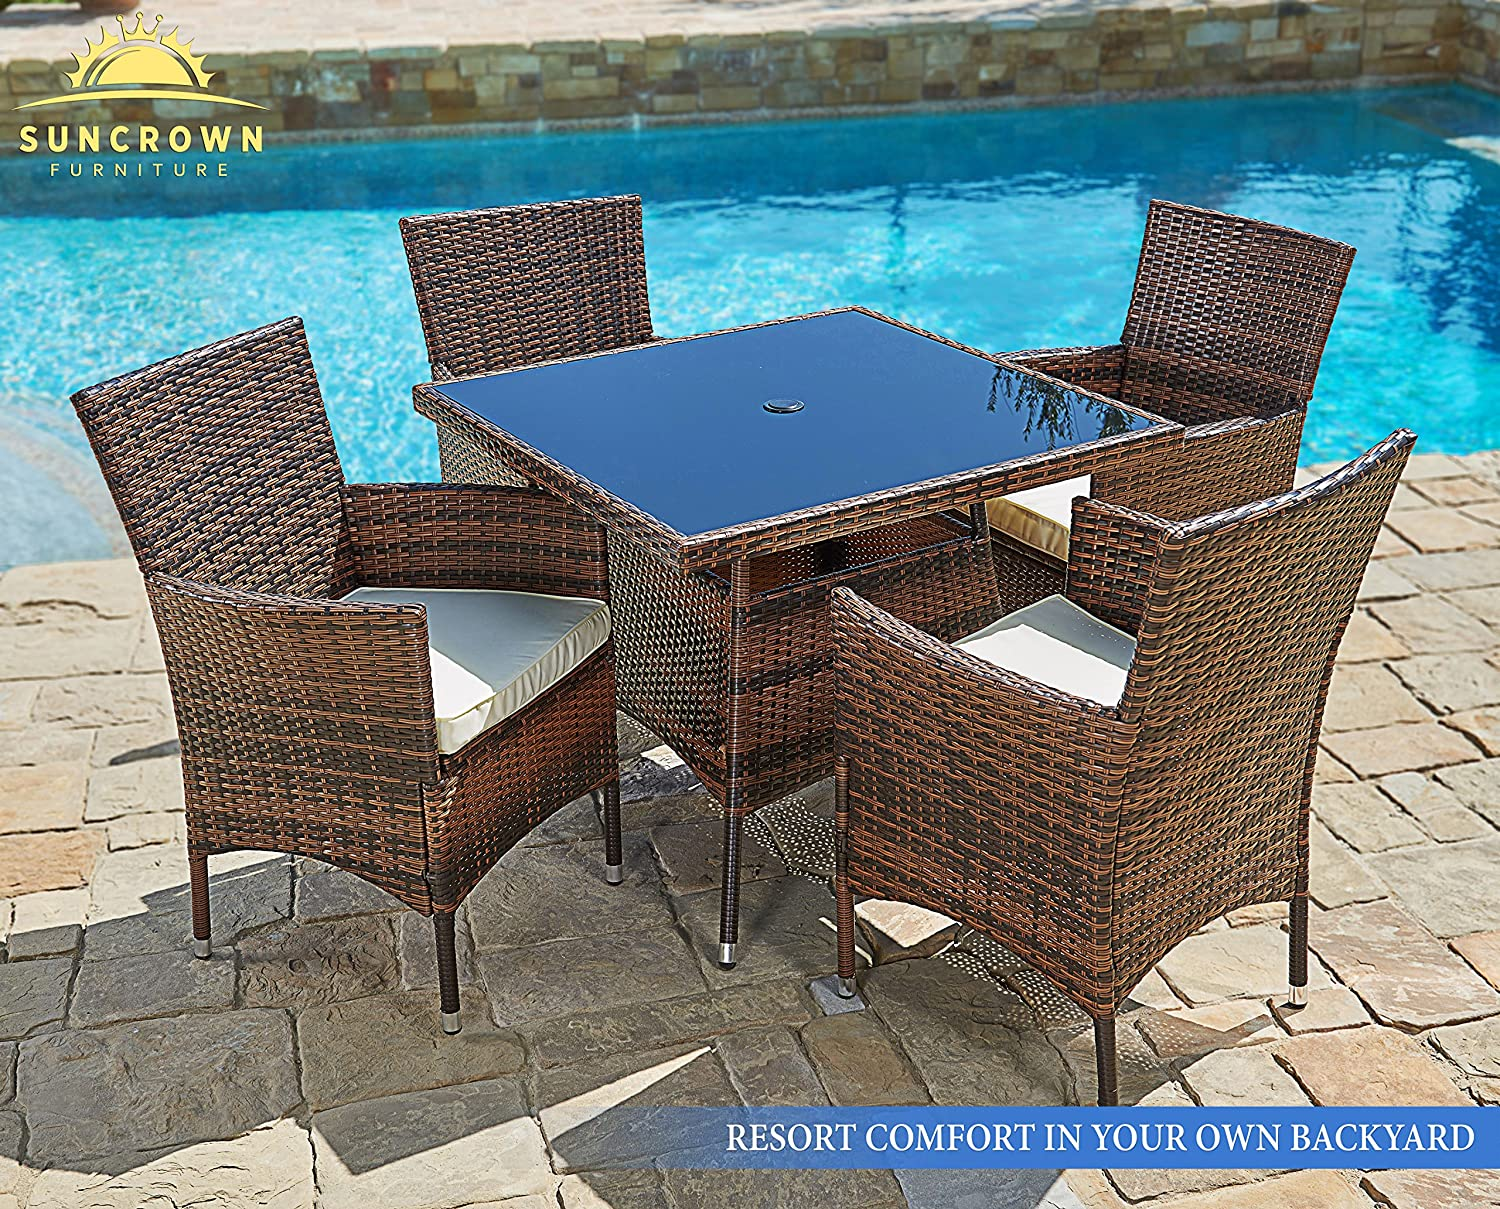 outdoor chairs and tables. Amazon.com: Suncrown Outdoor Furniture All-Weather Square Wicker Dining Table And Chairs (5-Piece Set) Washable Cushions | Patio, Backyard, Porch, Garden, Tables N